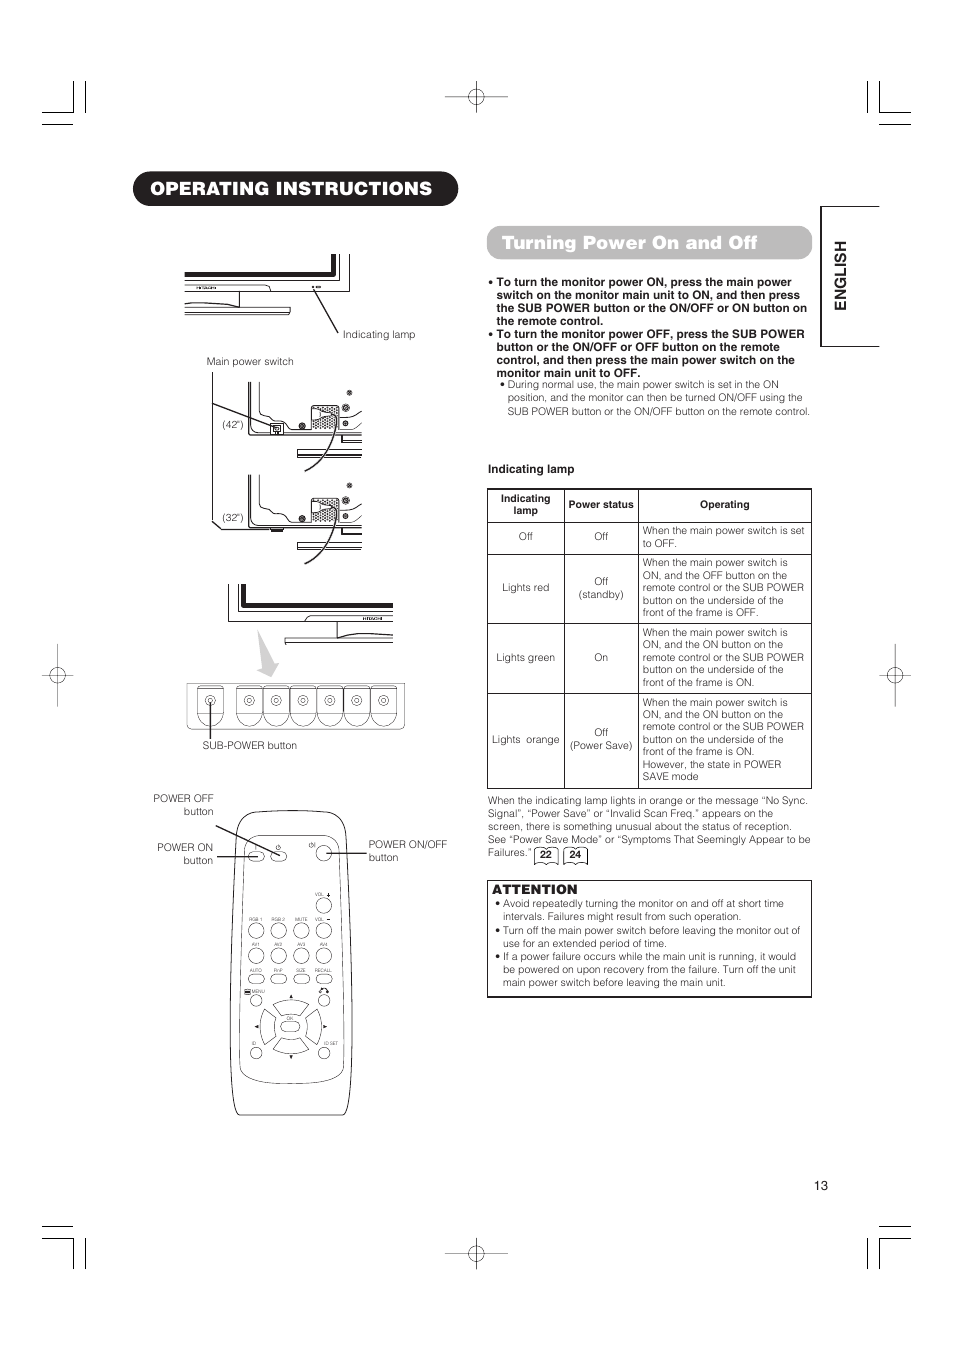 Operating instructions turning power on and off, English